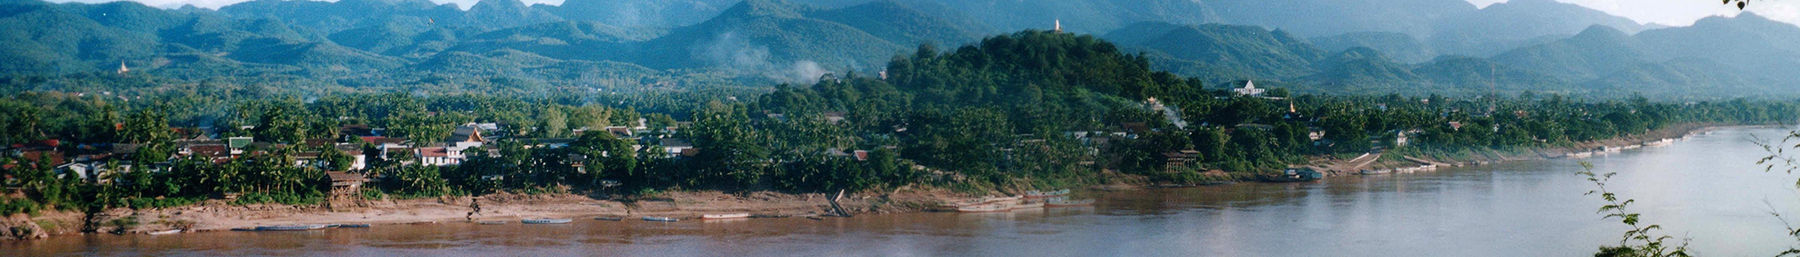 Luang Prabang banner Bank of Mekong river.jpg